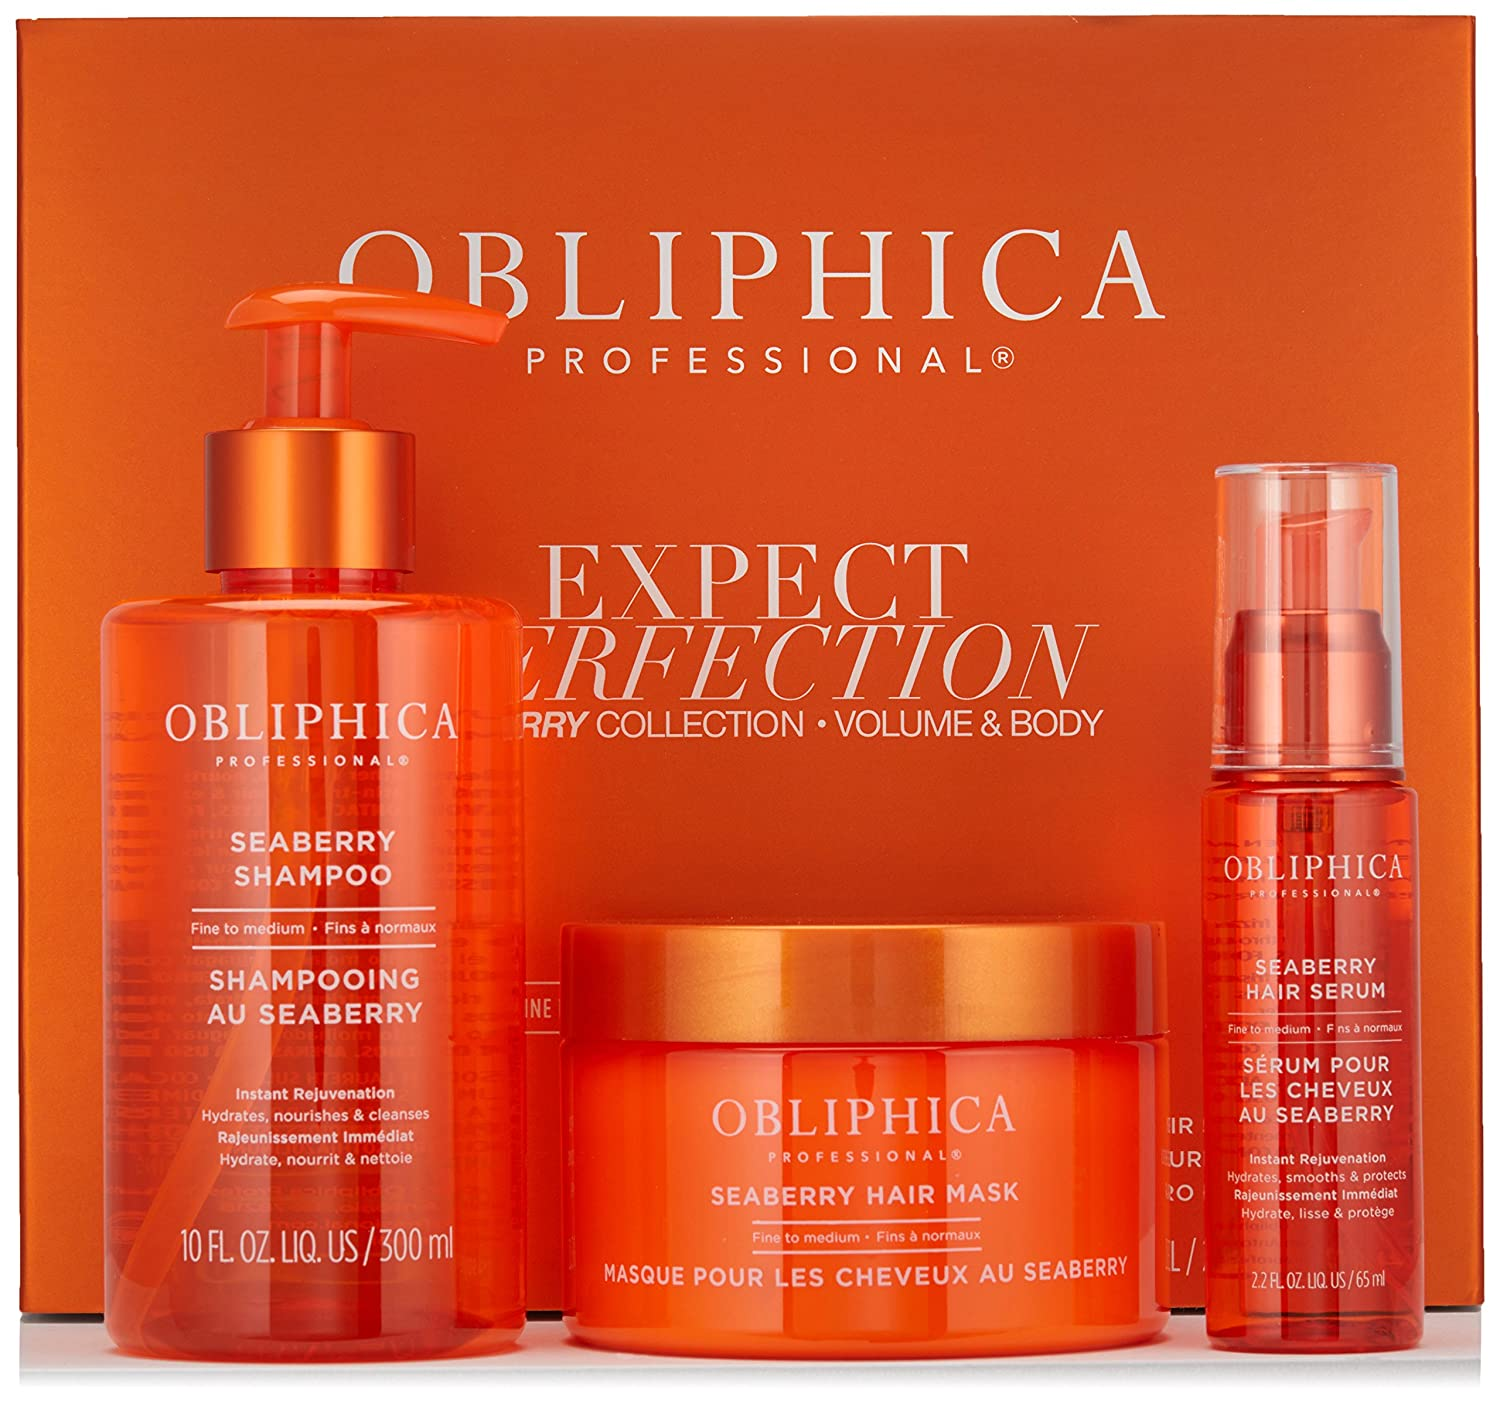 Obliphica Professional Expect Perfection Volume & Body Seaberry Collection